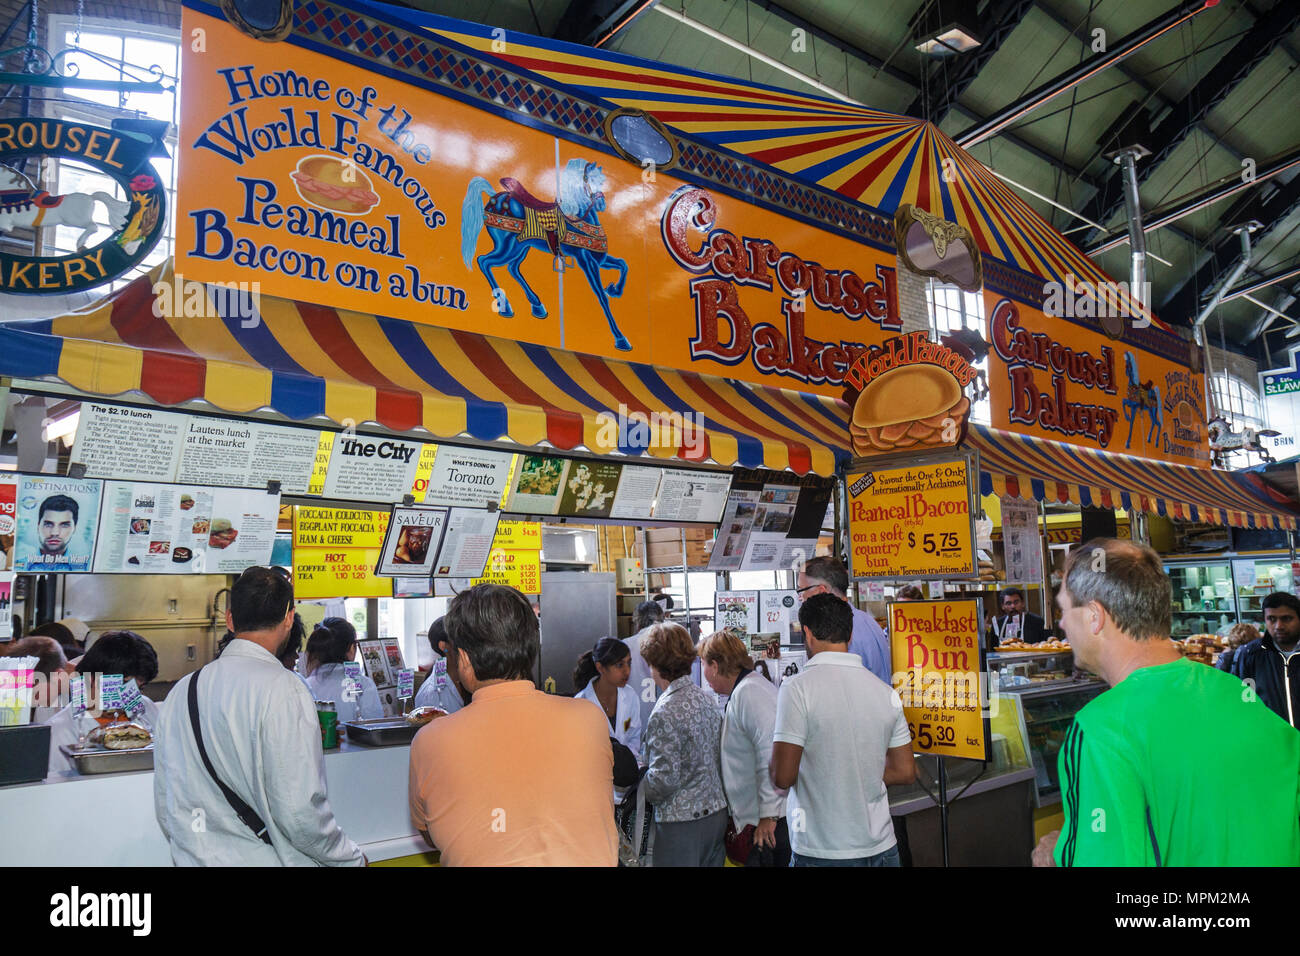 Toronto Canada Ontario St. Lawrence Market shopping vendor merchant Carousel Bakery counter man woman customer sales clerk emplo - Stock Image